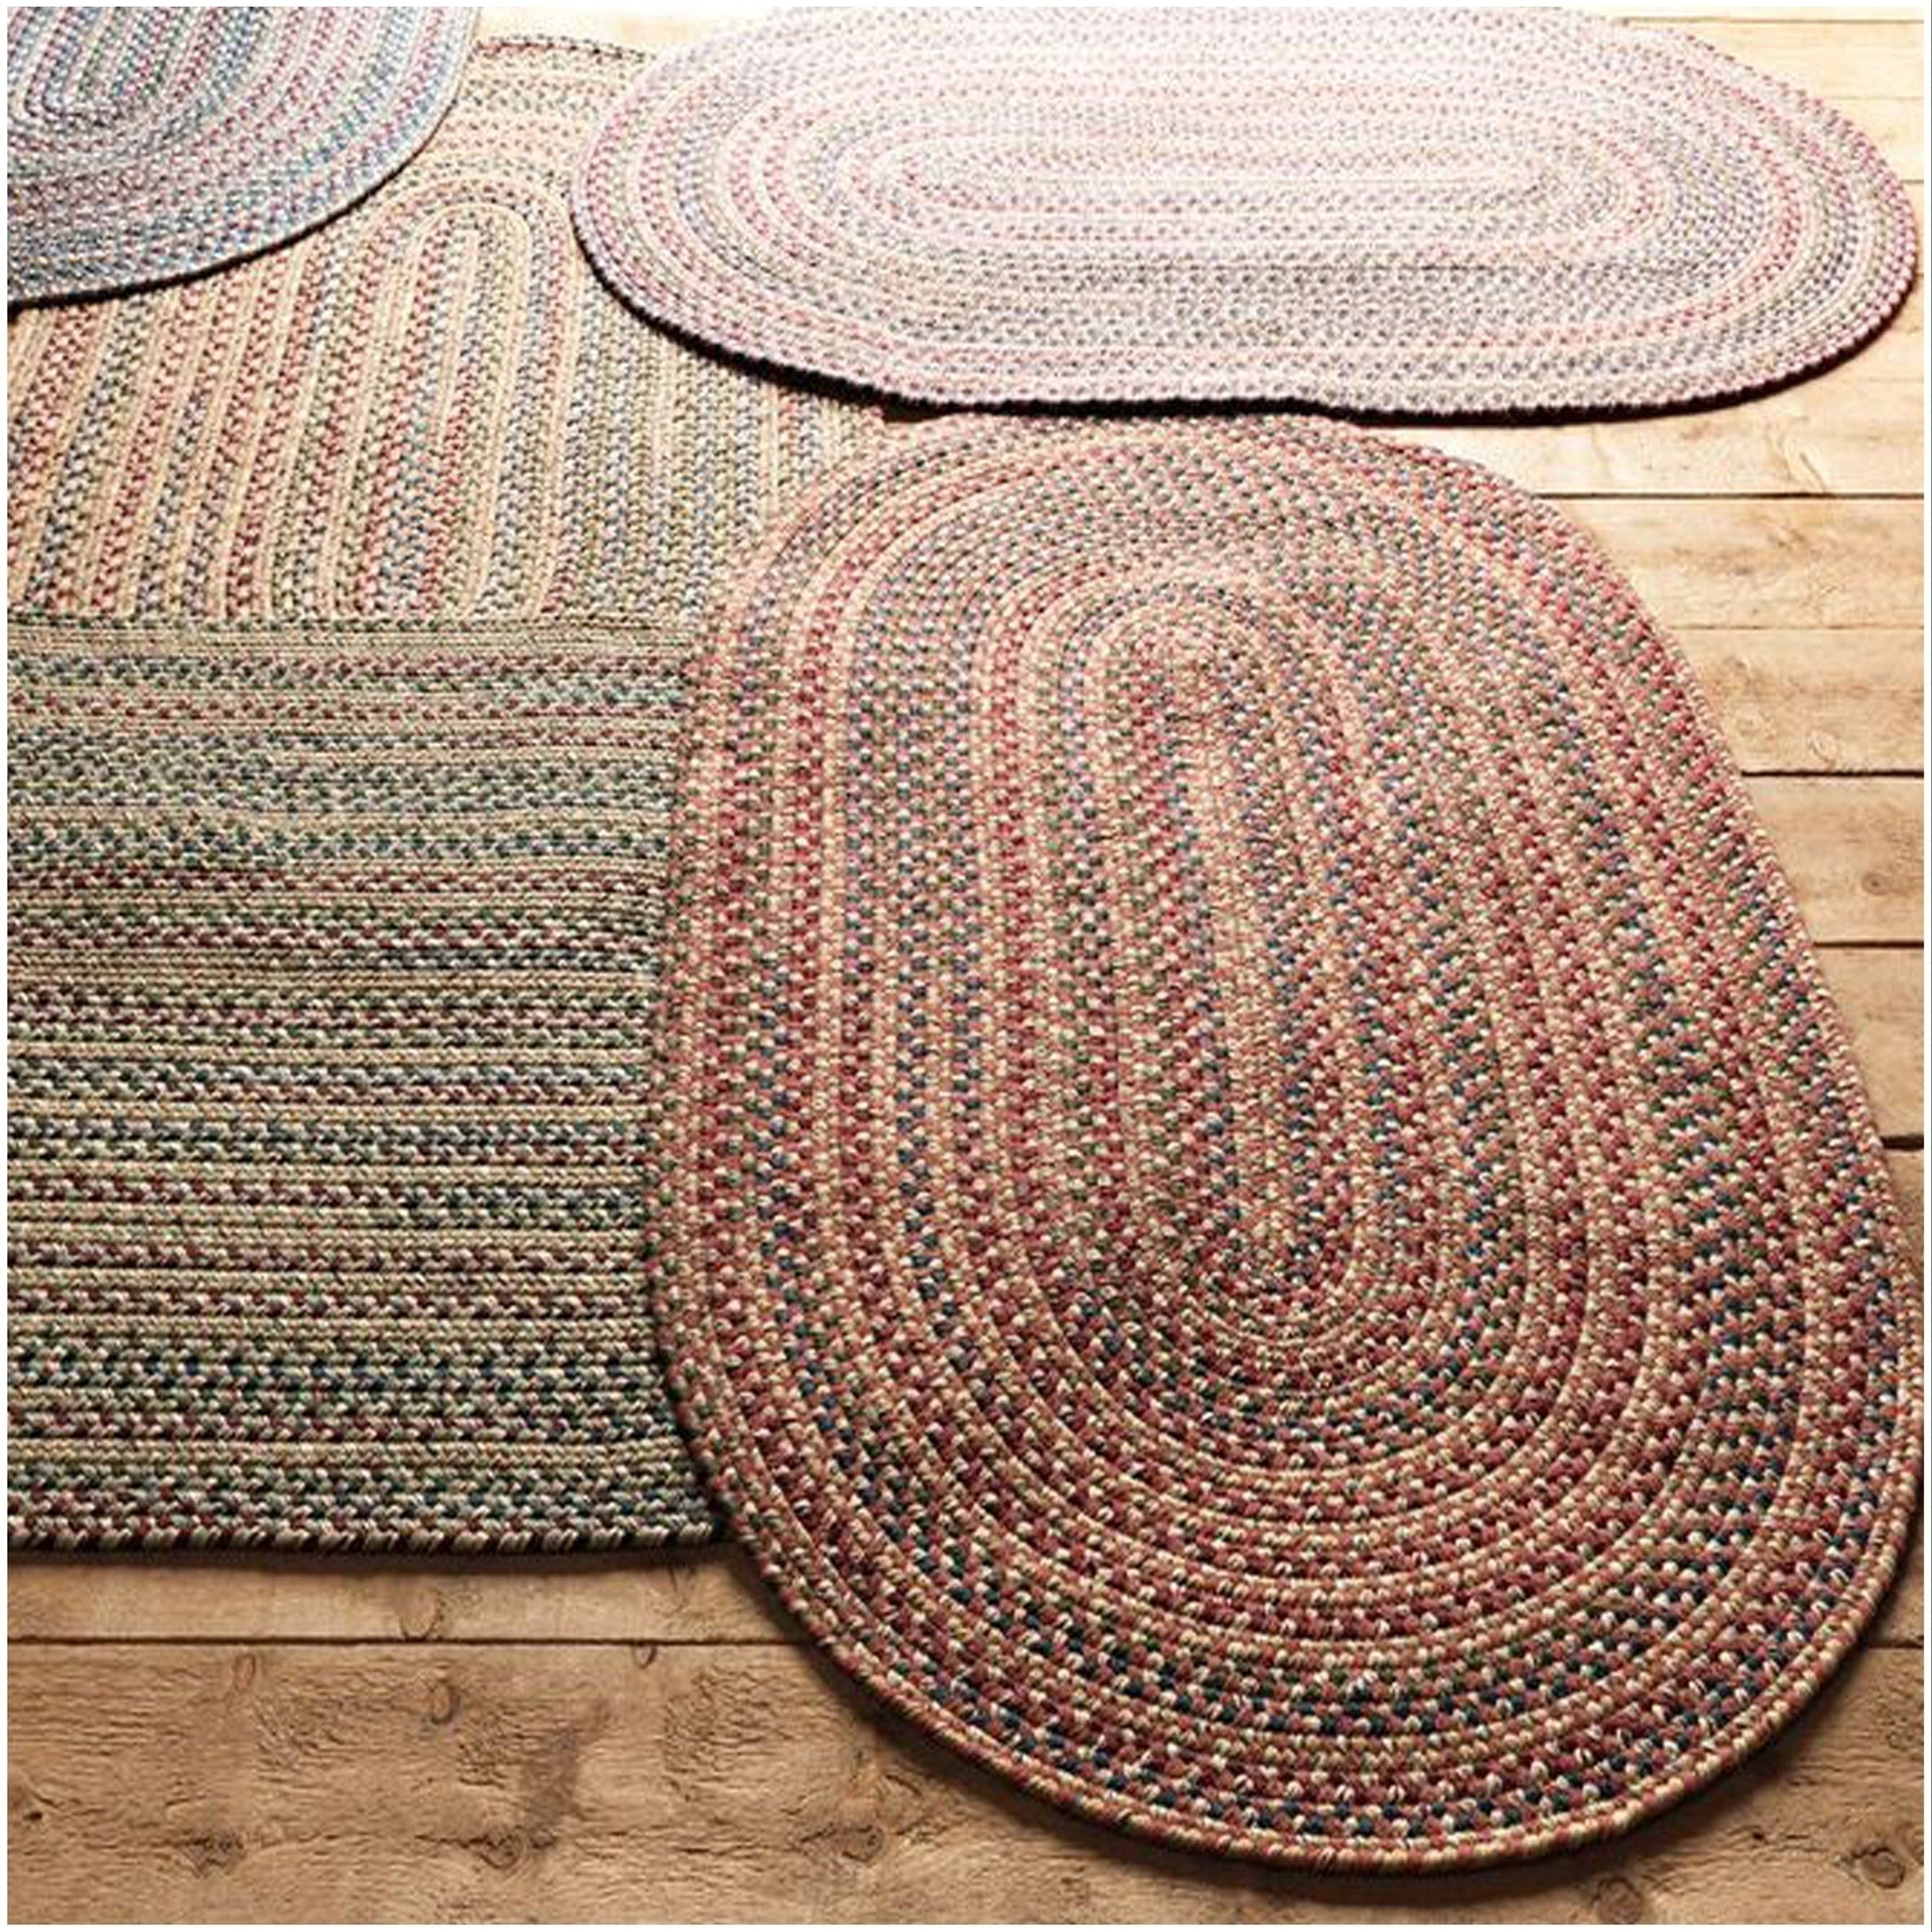 Braided Rug Houston 5x7 Rosewood Red